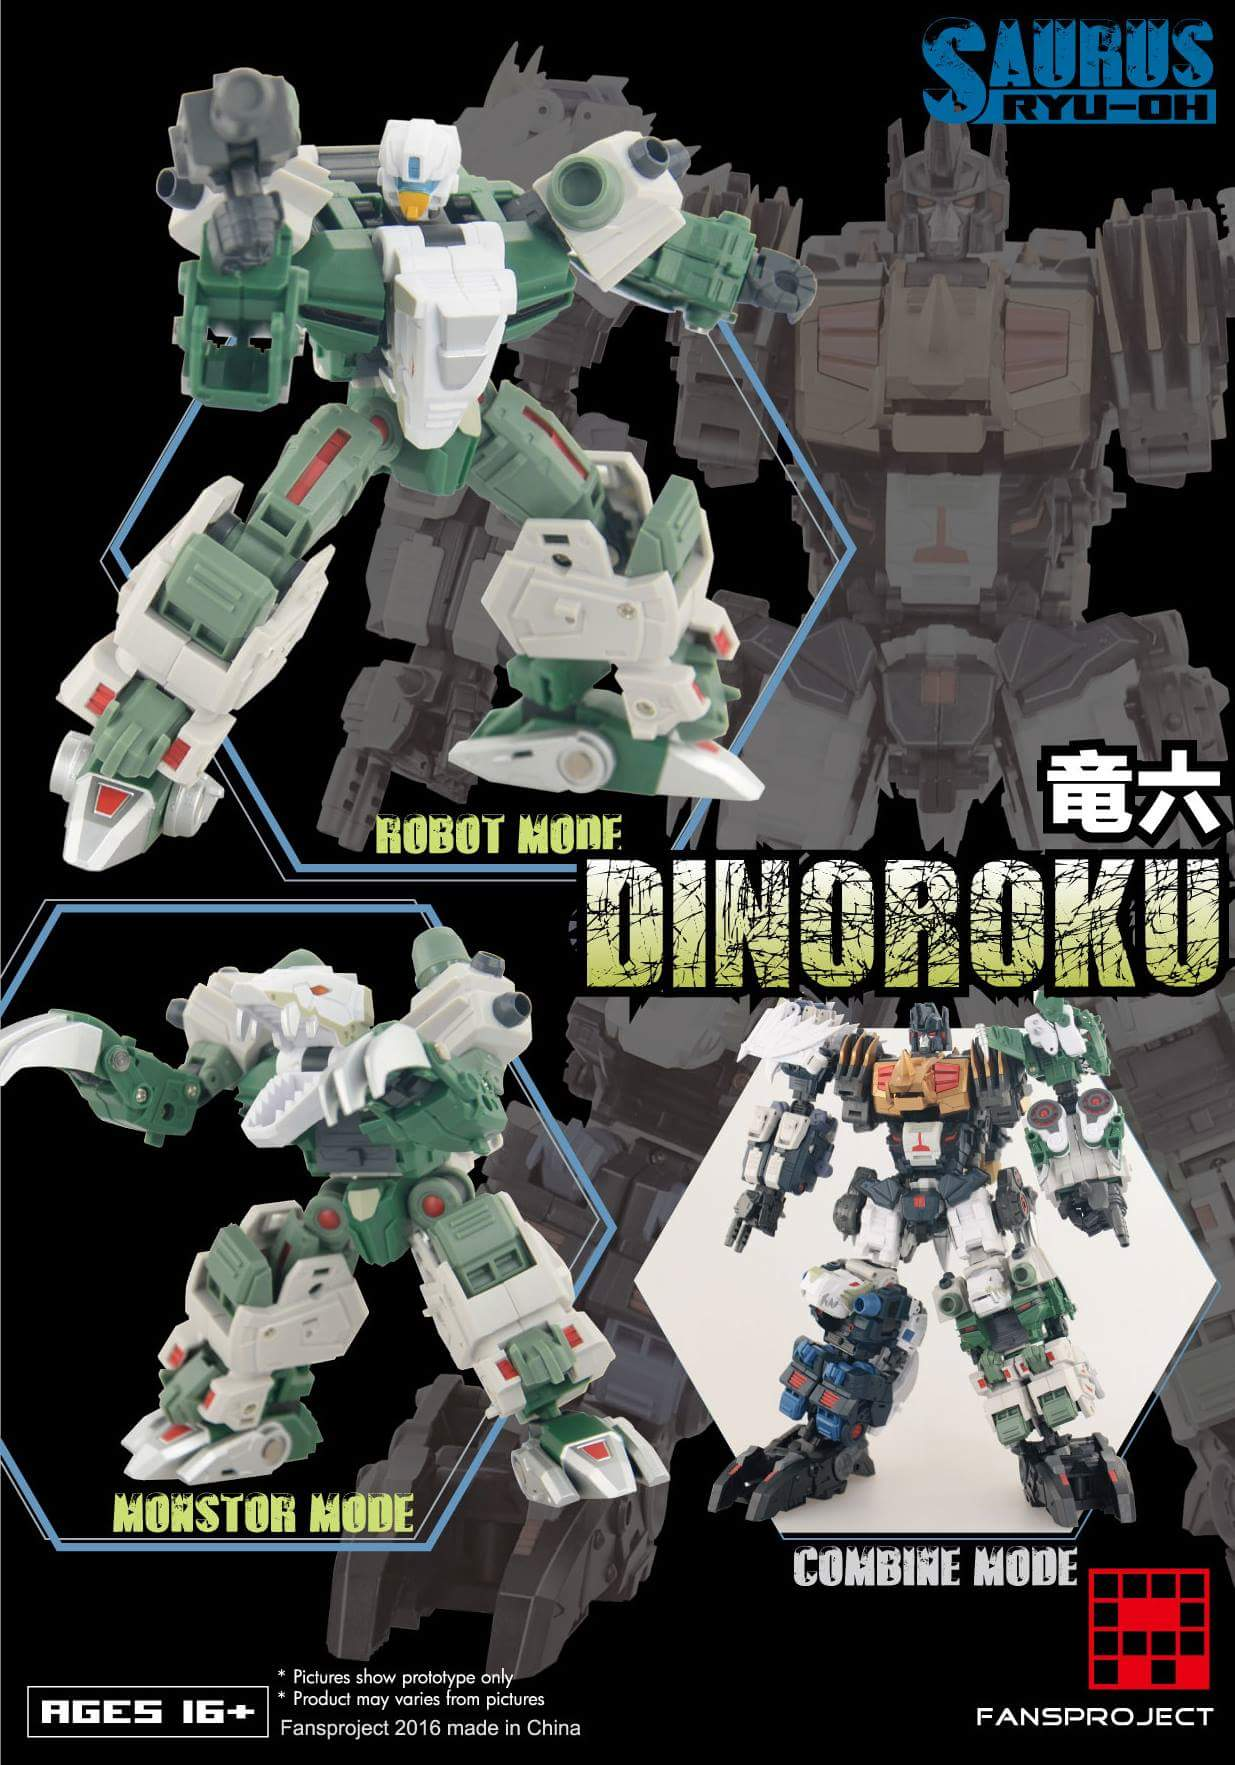 [FansProject] Produit Tiers - Jouet Saurus Ryu-oh aka Dinoking (Victory) | Monstructor (USA) - Page 2 B0FiD3s3